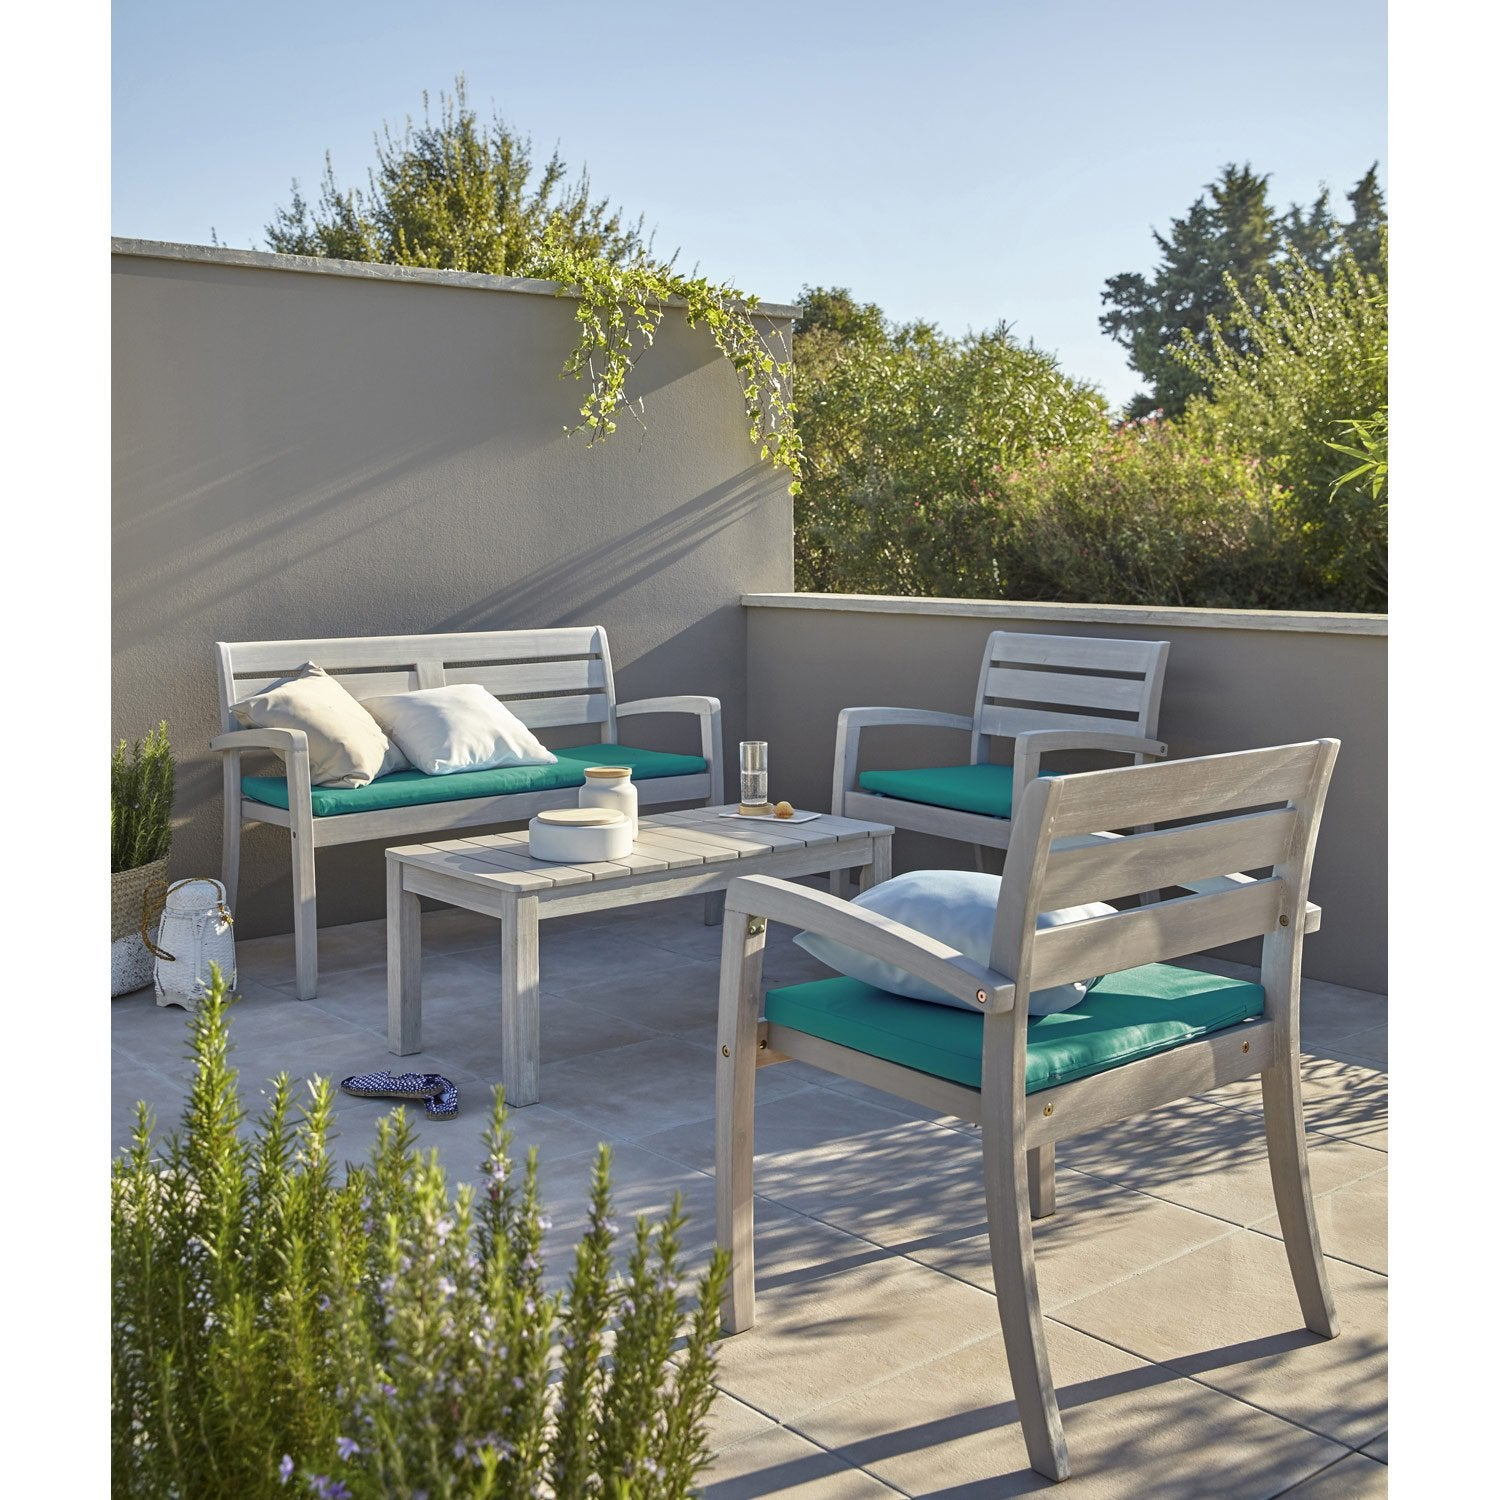 Salon de jardin portofino bois naturel 1 table 2 fauteuils 1 banc leroy merlin - Leroy merlin sombrillas de jardin ...